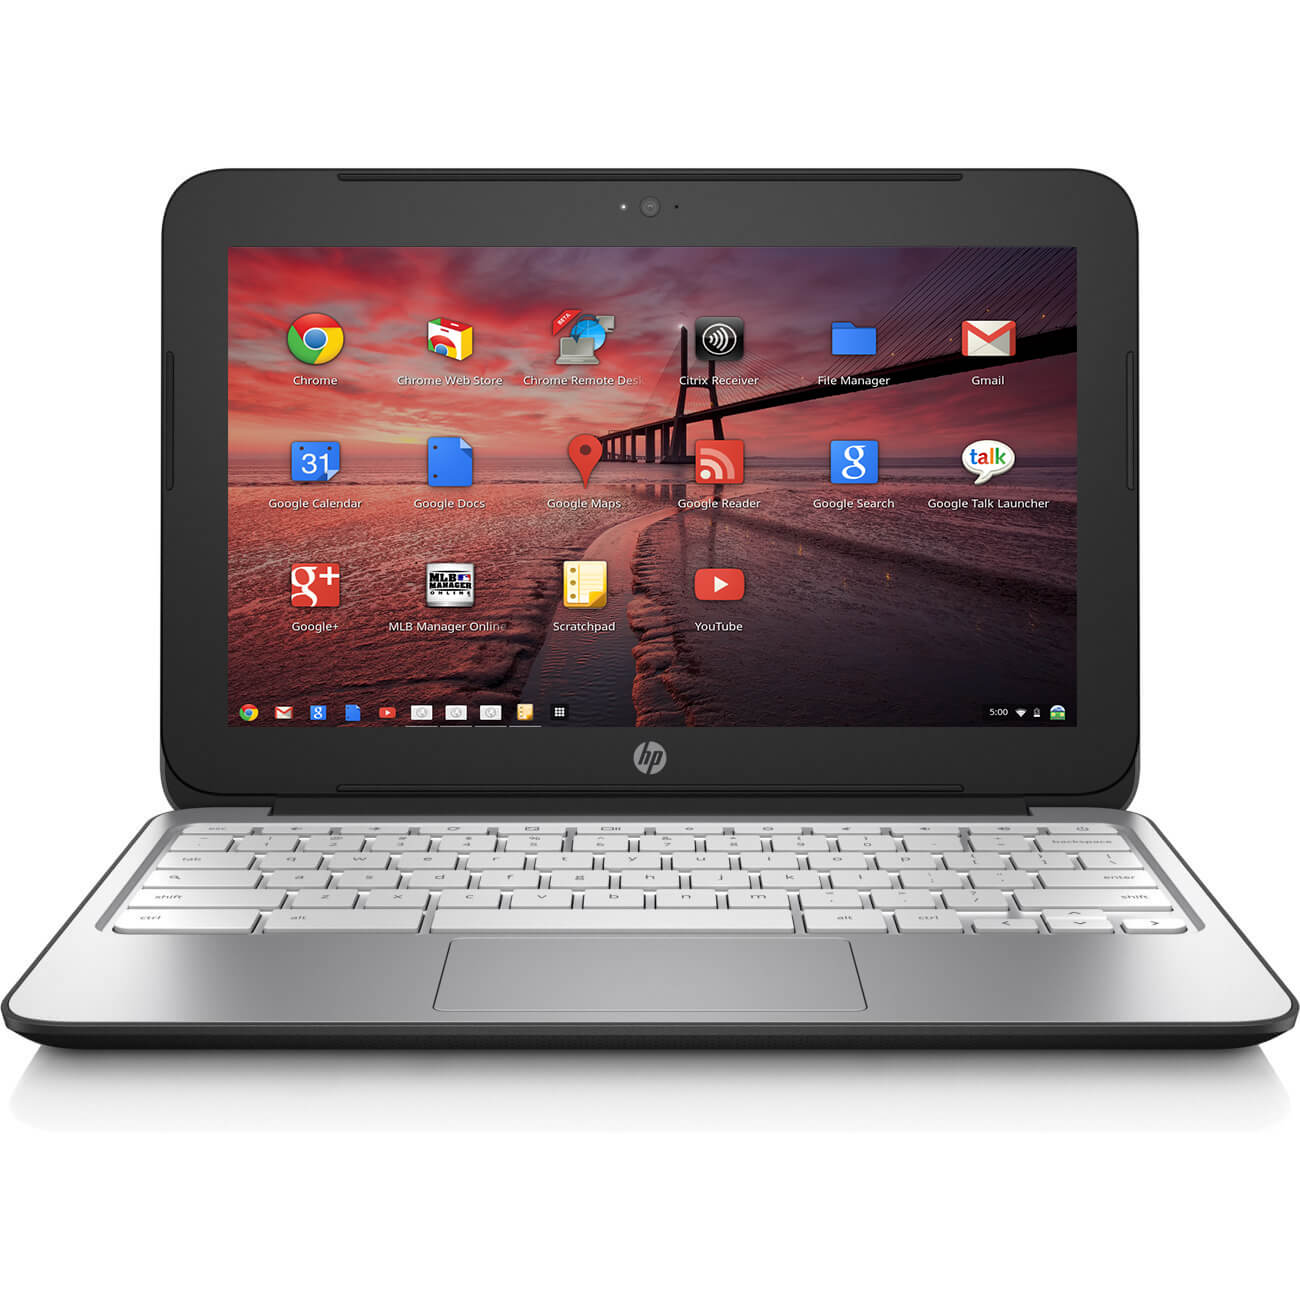 "Refurbished HP Chromebook 11 G2 11.6"" Chromebook Laptop Exynos Dual Core 1.7GHz 2GB 16GB"